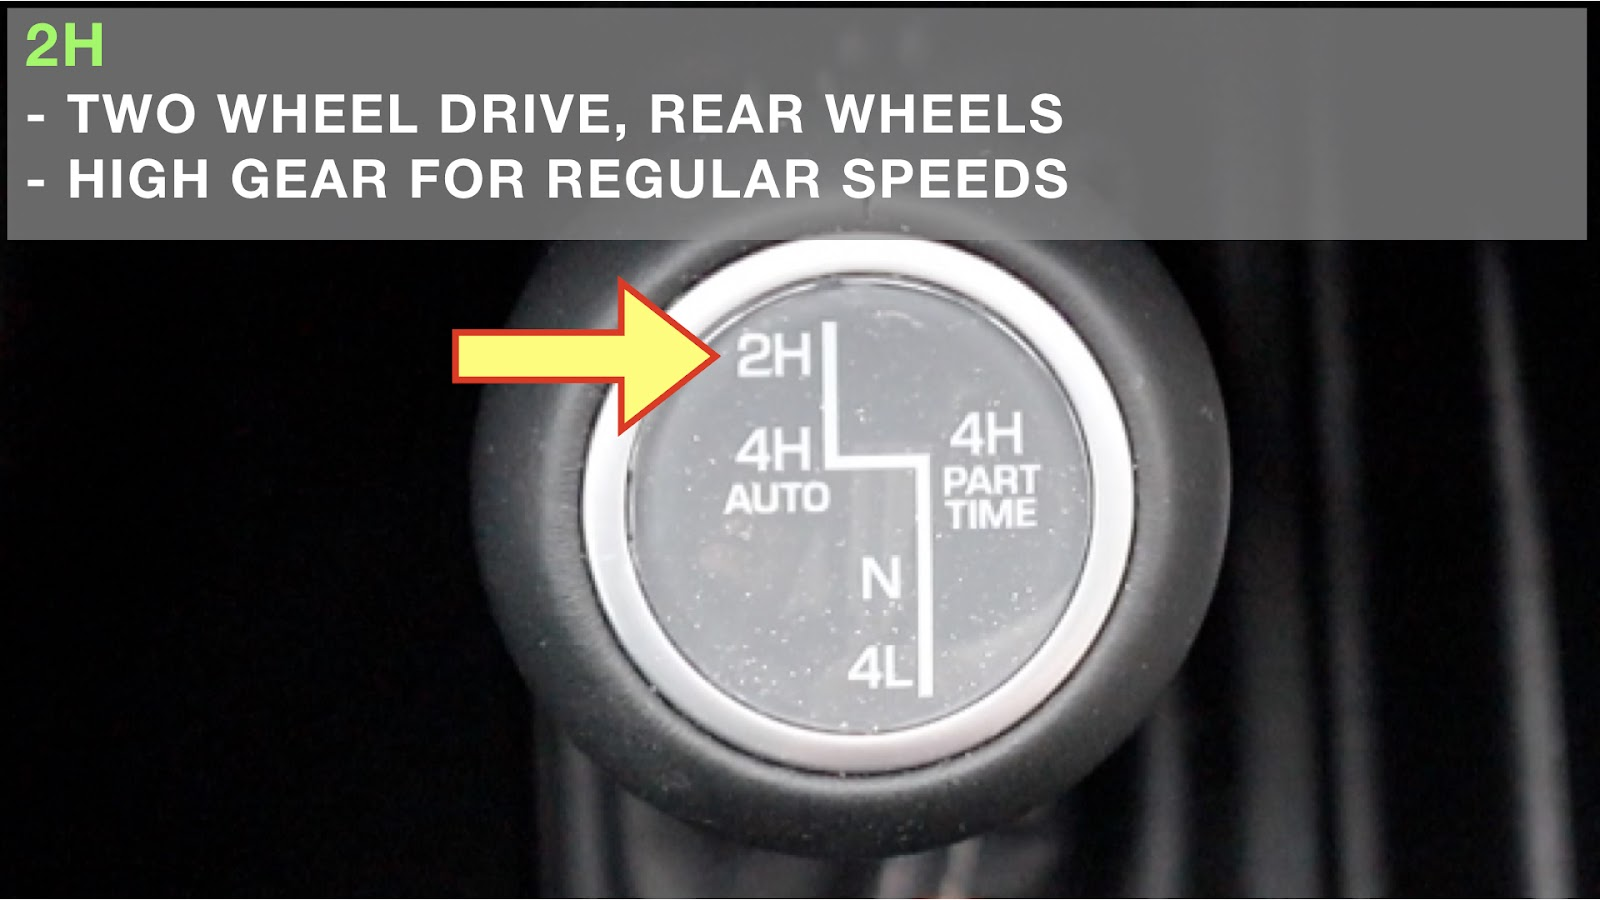 Image showing the 2H setting when using 4wd in a Jeep Wrangler